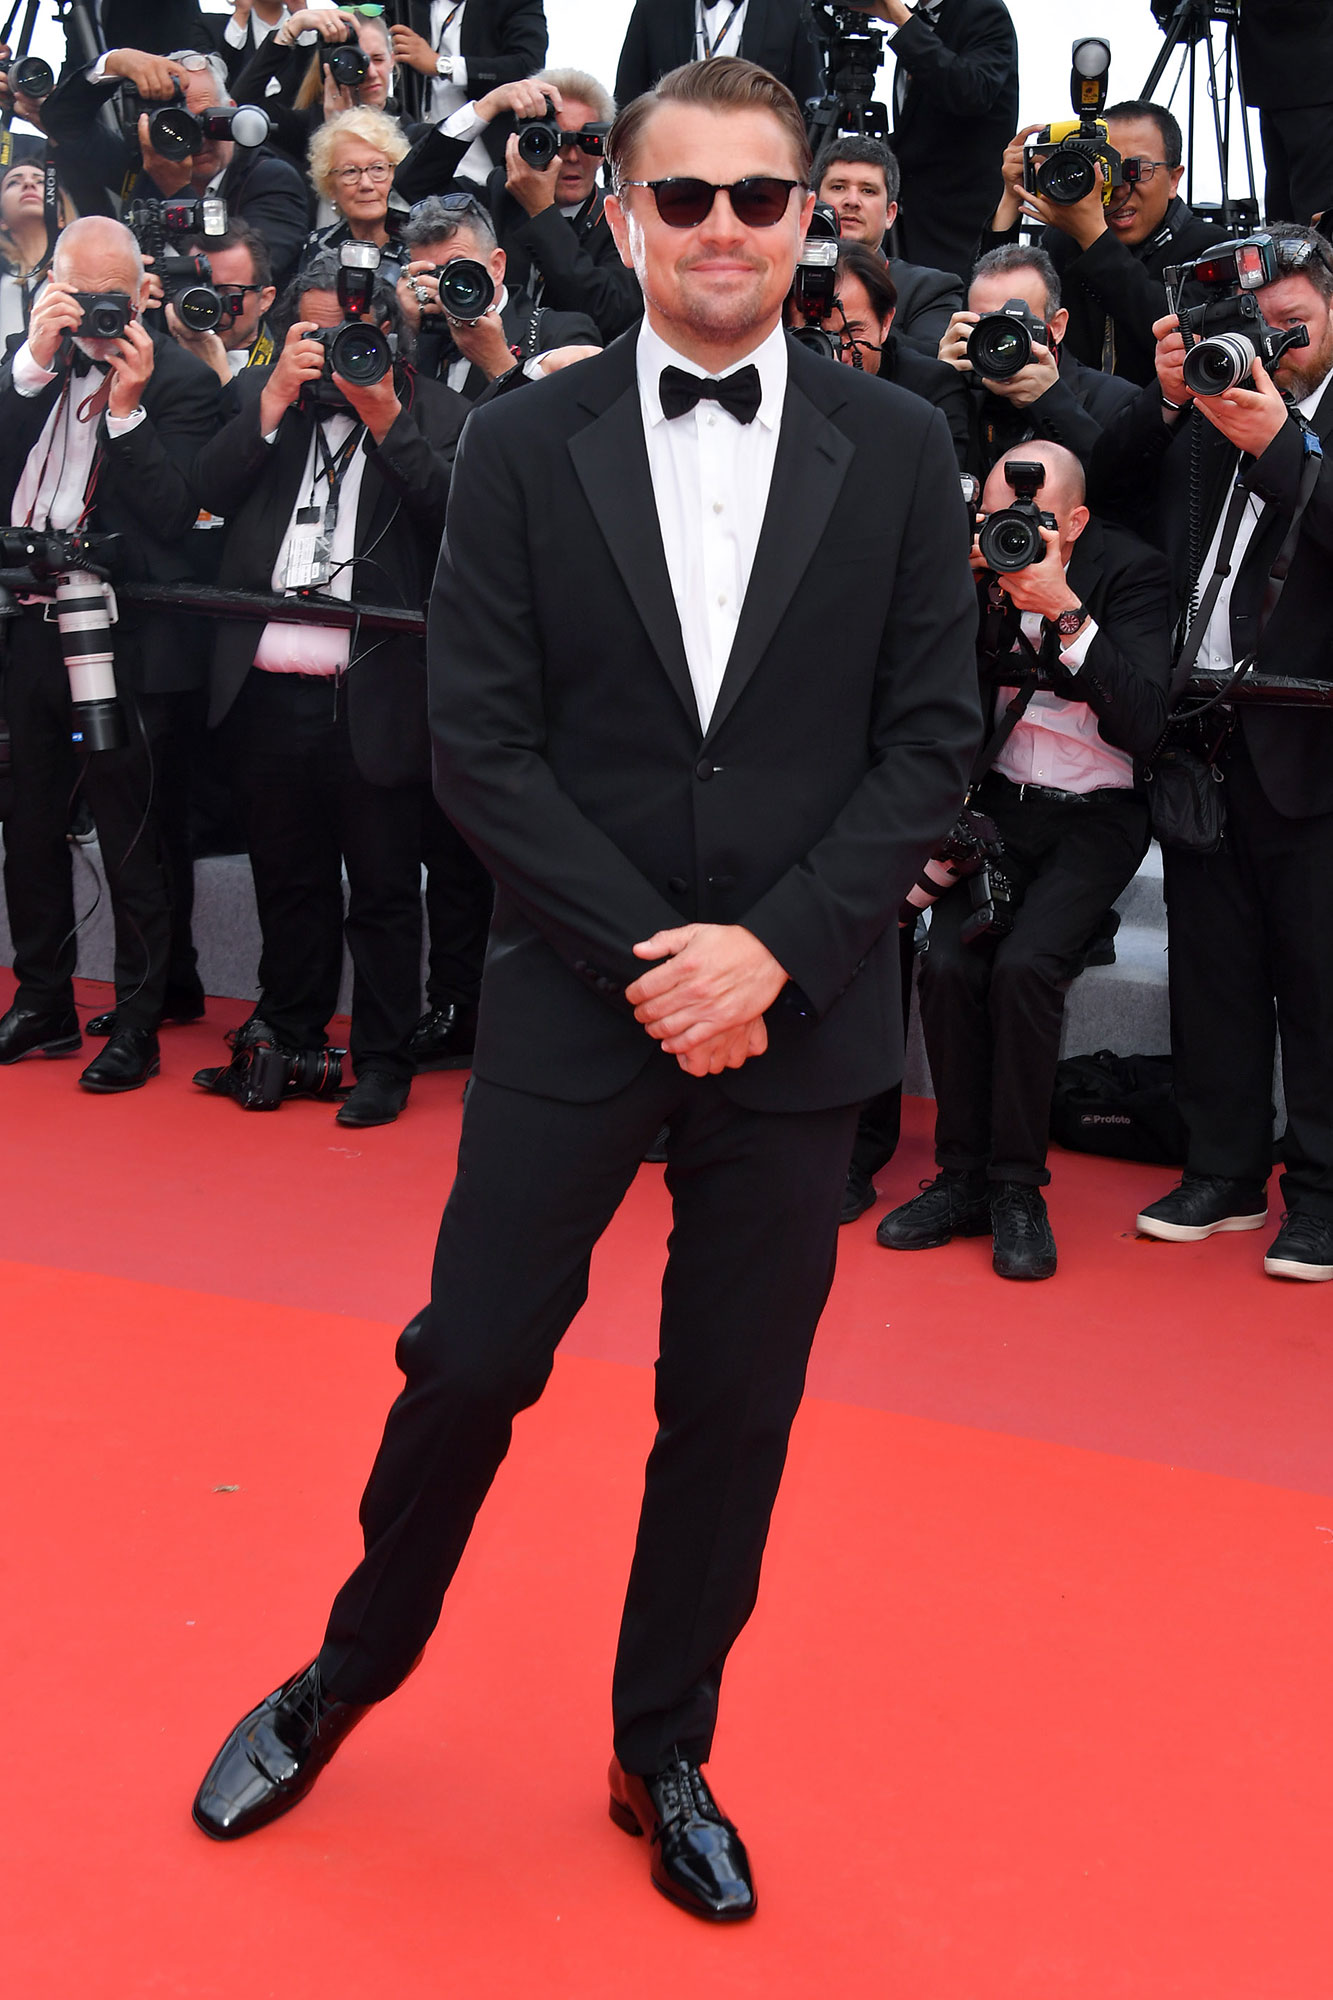 Leonardo DiCaprio Cannes Film Festival 2019 Most Stylish Guys Red Carpet - Wayfarer shades added a cool touch to the actor's timeless black tux at the Once Upon a Time in Hollywood screening on Tuesday, May 21.